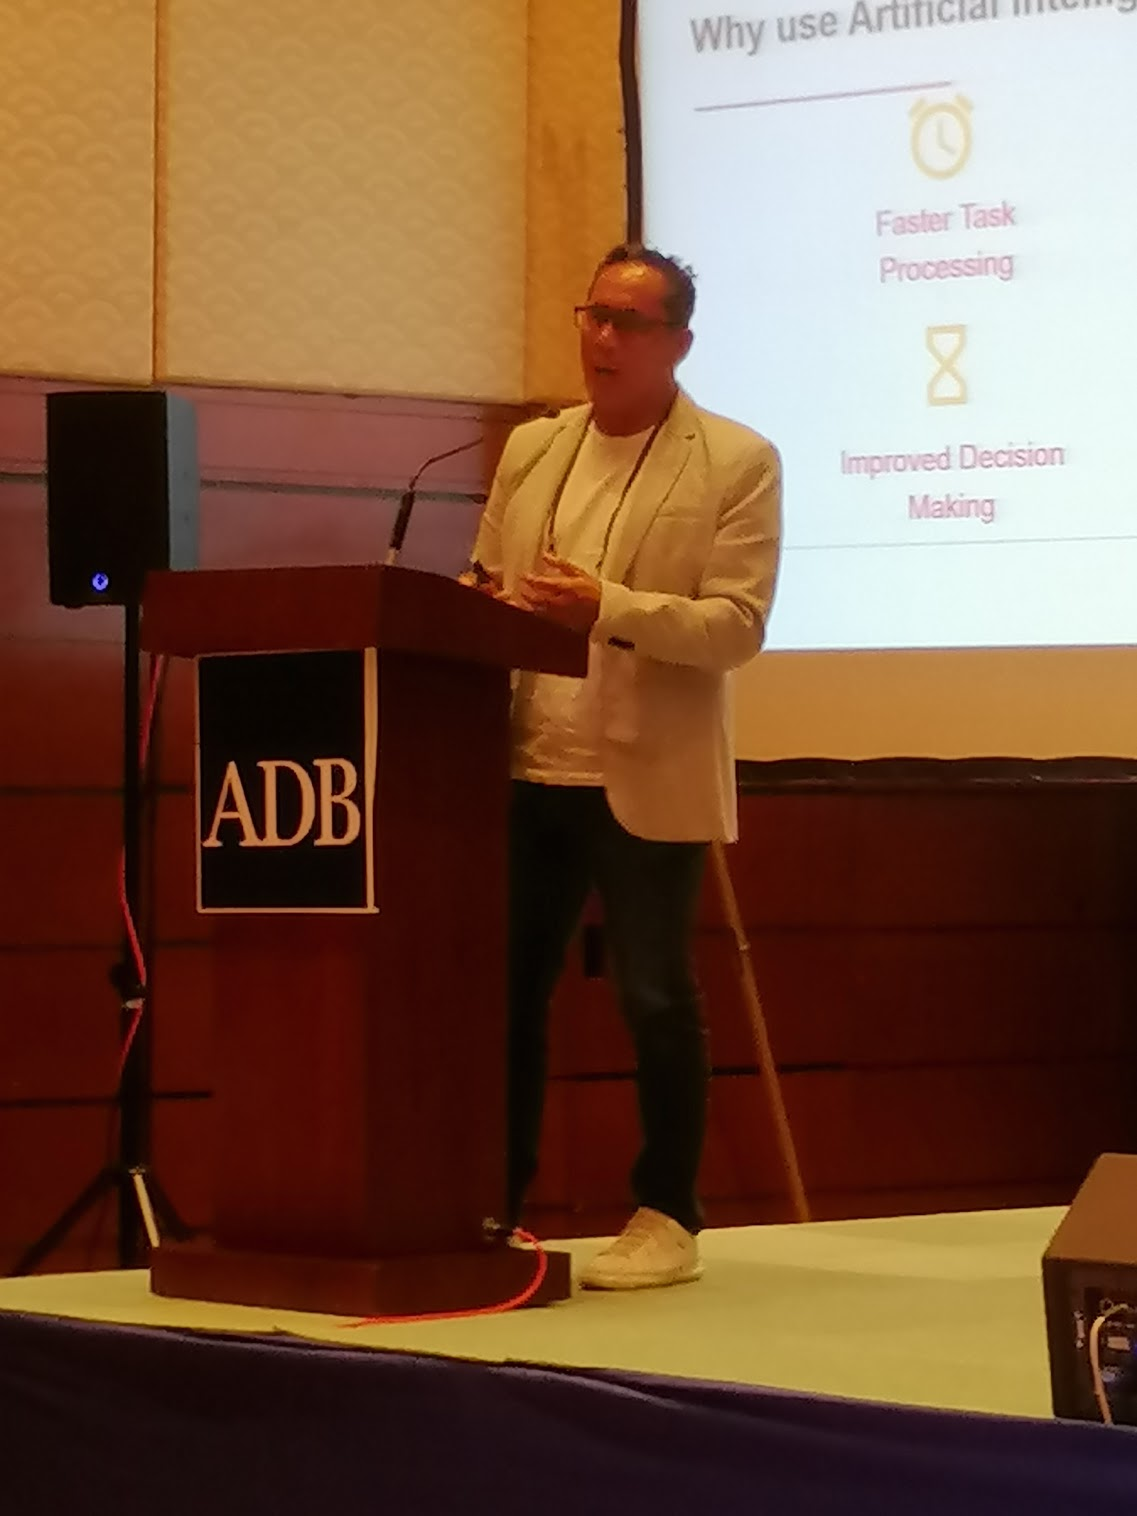 2:31 p.m. - Mario Domingo, CTO of CHI-X Global Technologies Philippines demystifies the concept of artificial intelligence while discussing digital transformation.